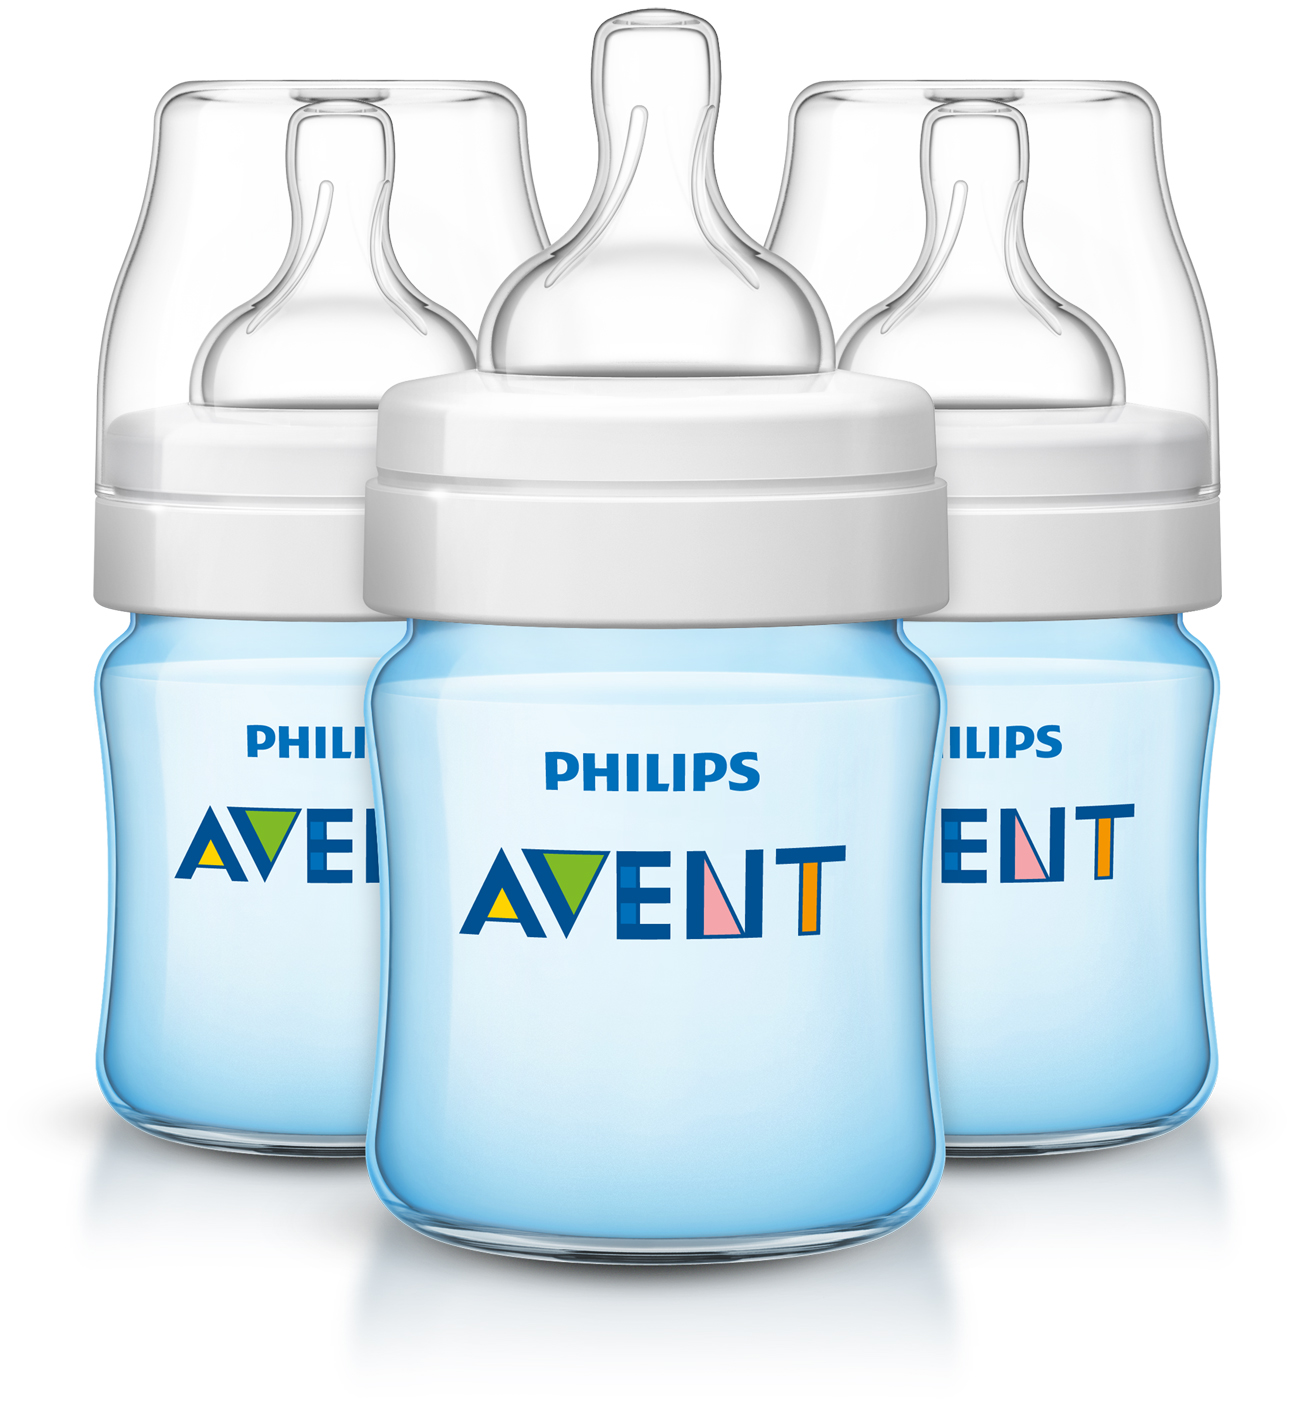 Philips Avent Anti-colic baby bottle Blue, 4oz, 3pk, SCF402/37